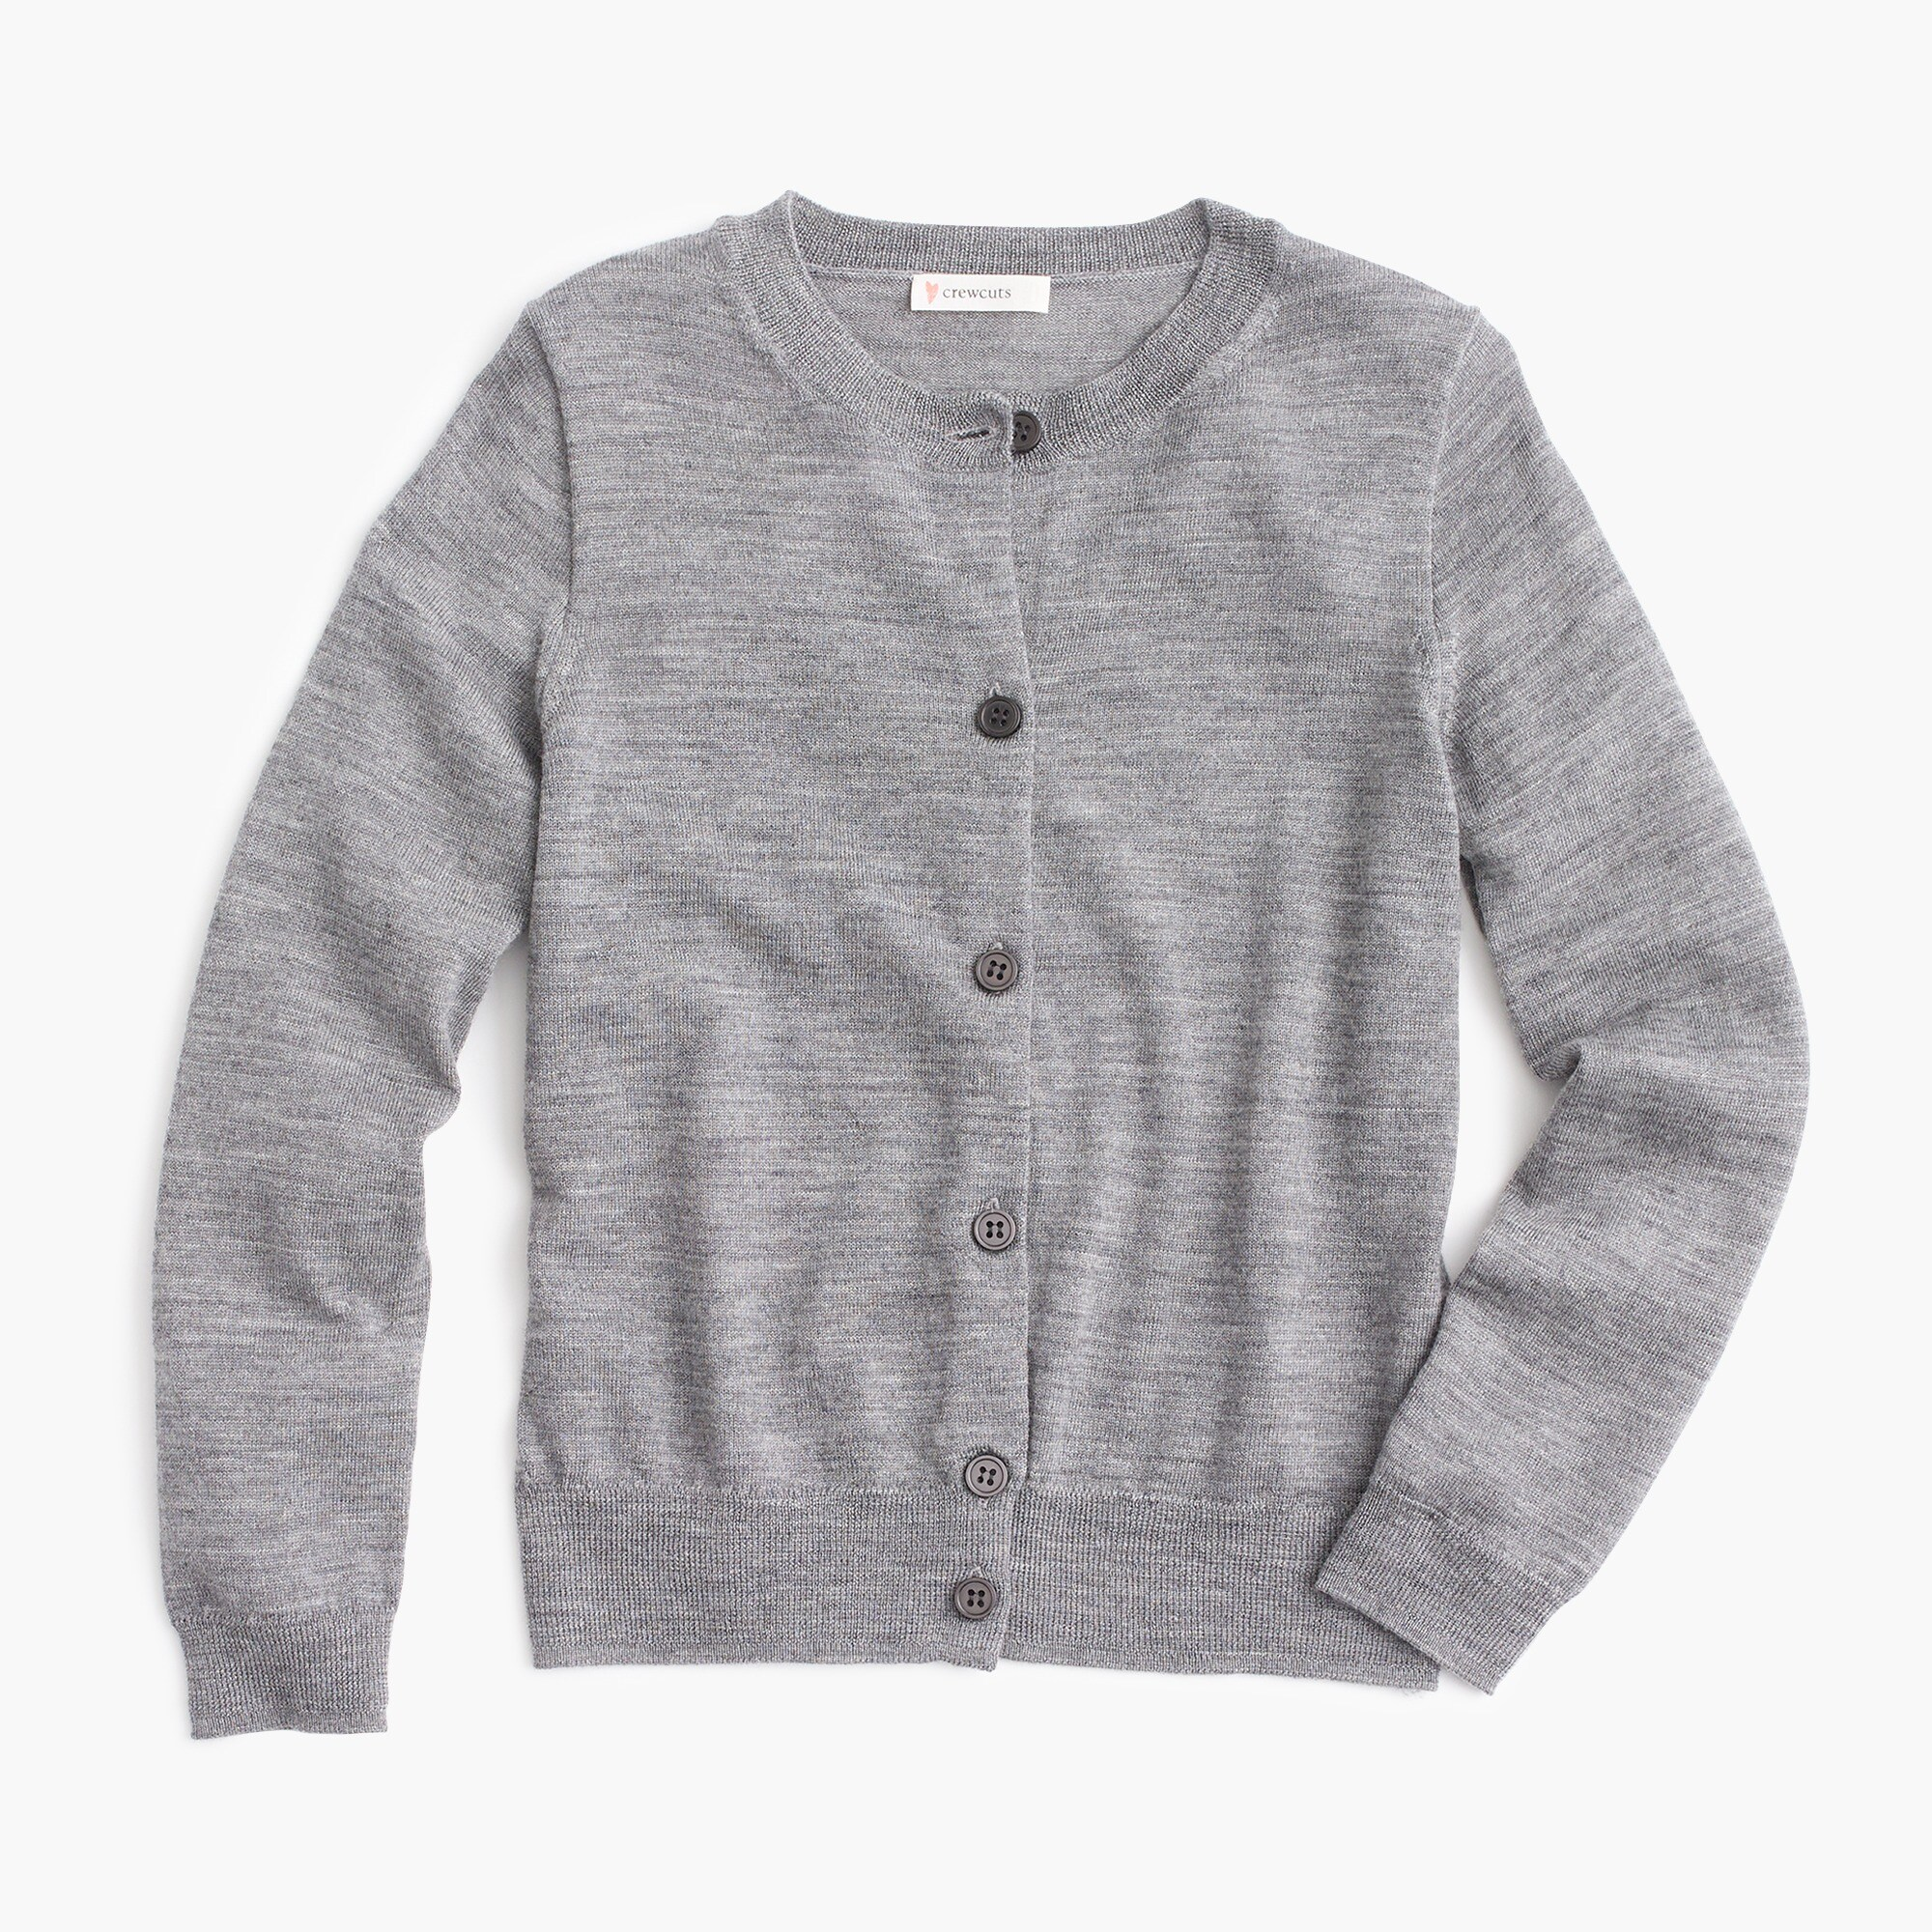 Girls' classic cardigan sweater